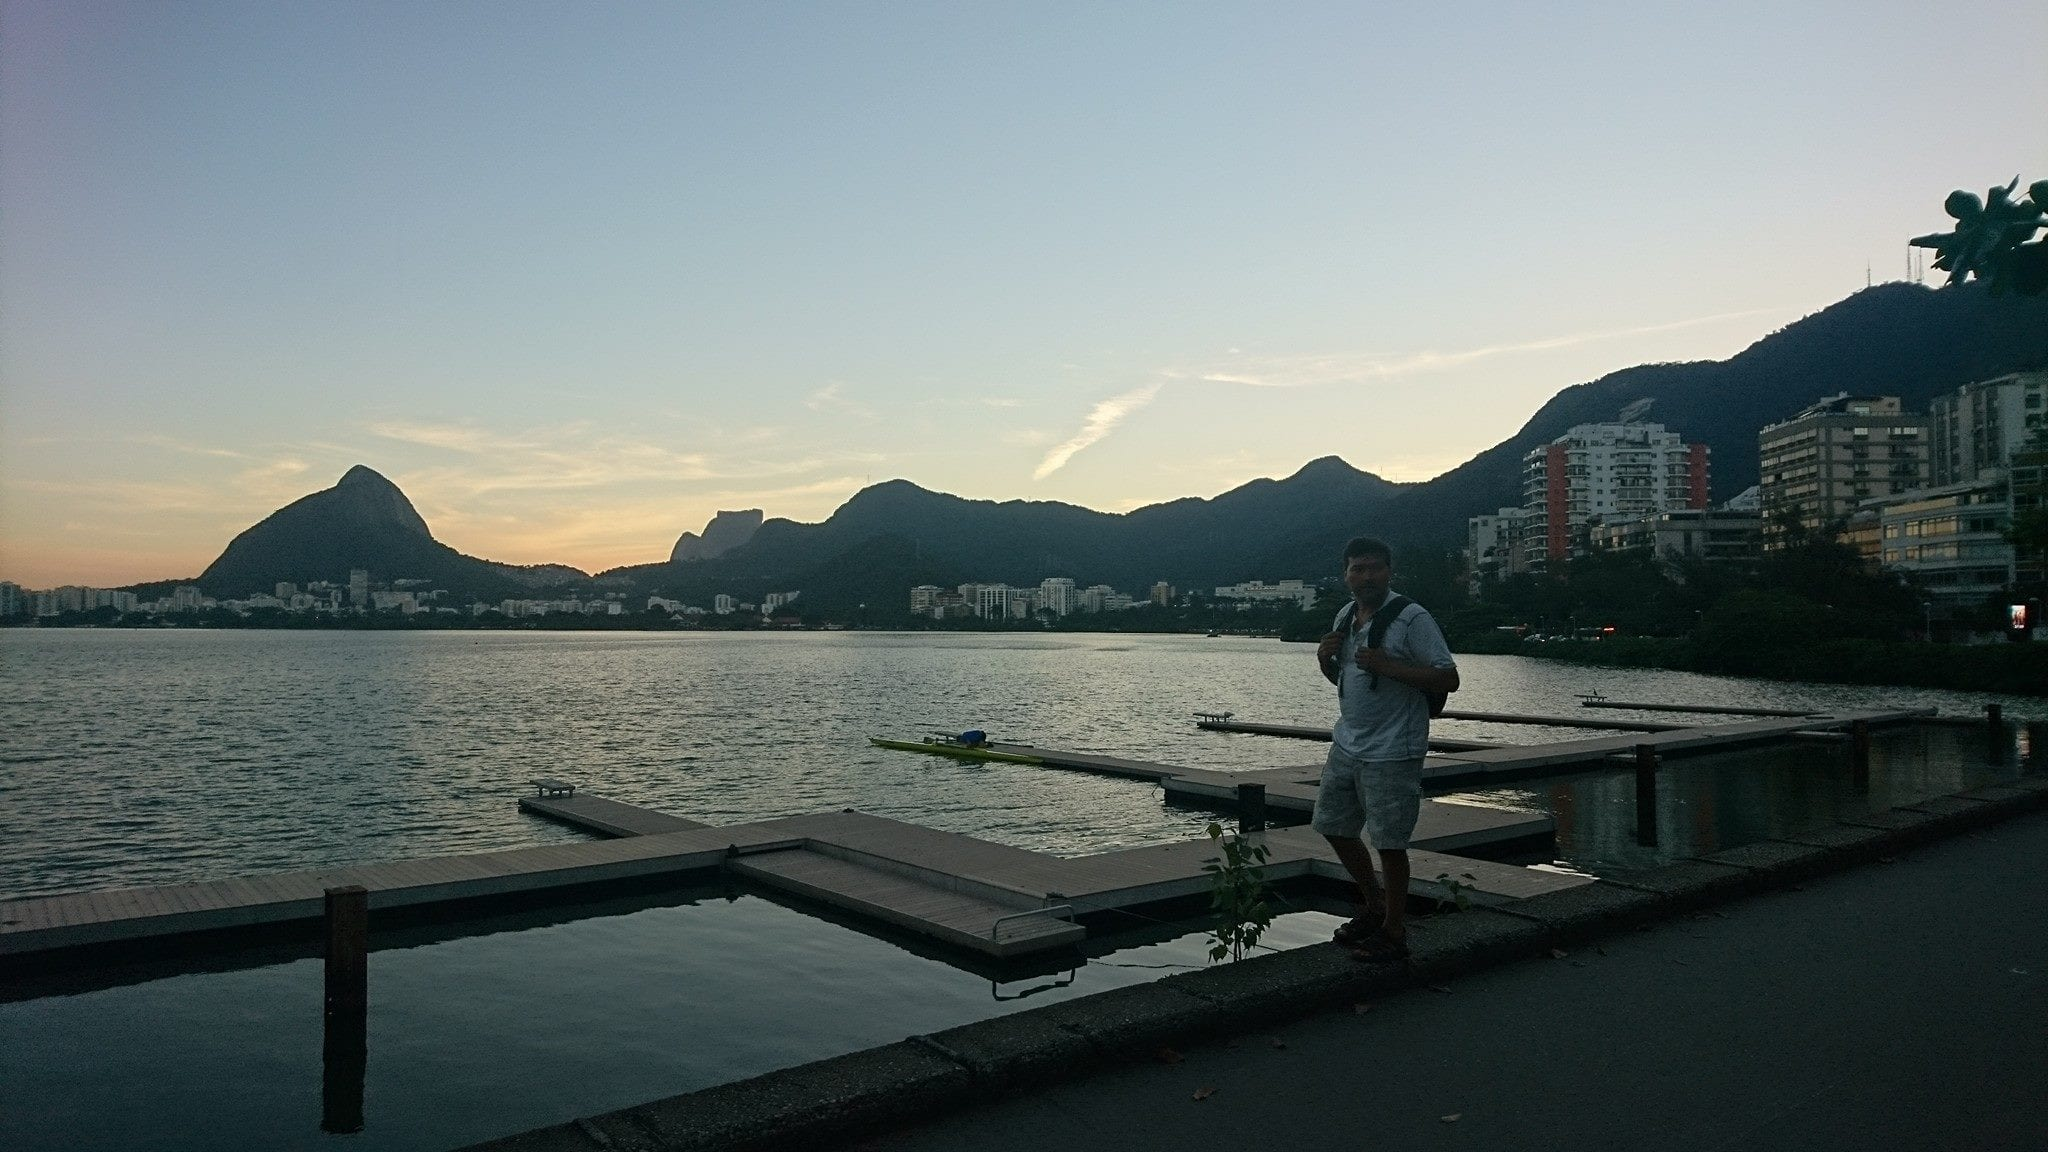 The afternoon is beautiful in Rio's de Janeiro Lagoon.